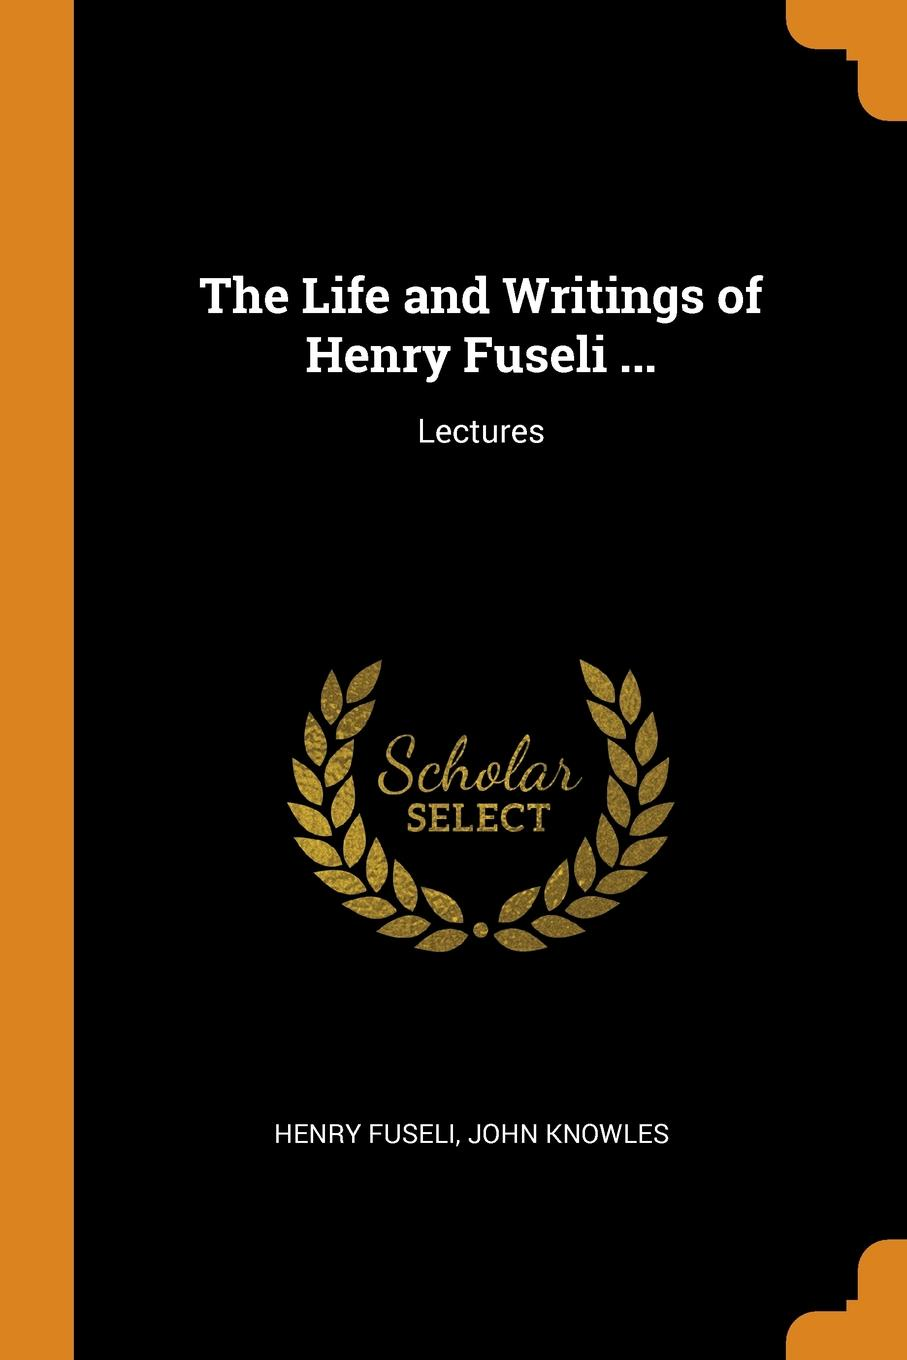 Henry Fuseli, John Knowles The Life and Writings of Henry Fuseli ... Lectures fuseli henry the life and writings of henry fuseli volume 3 of 3